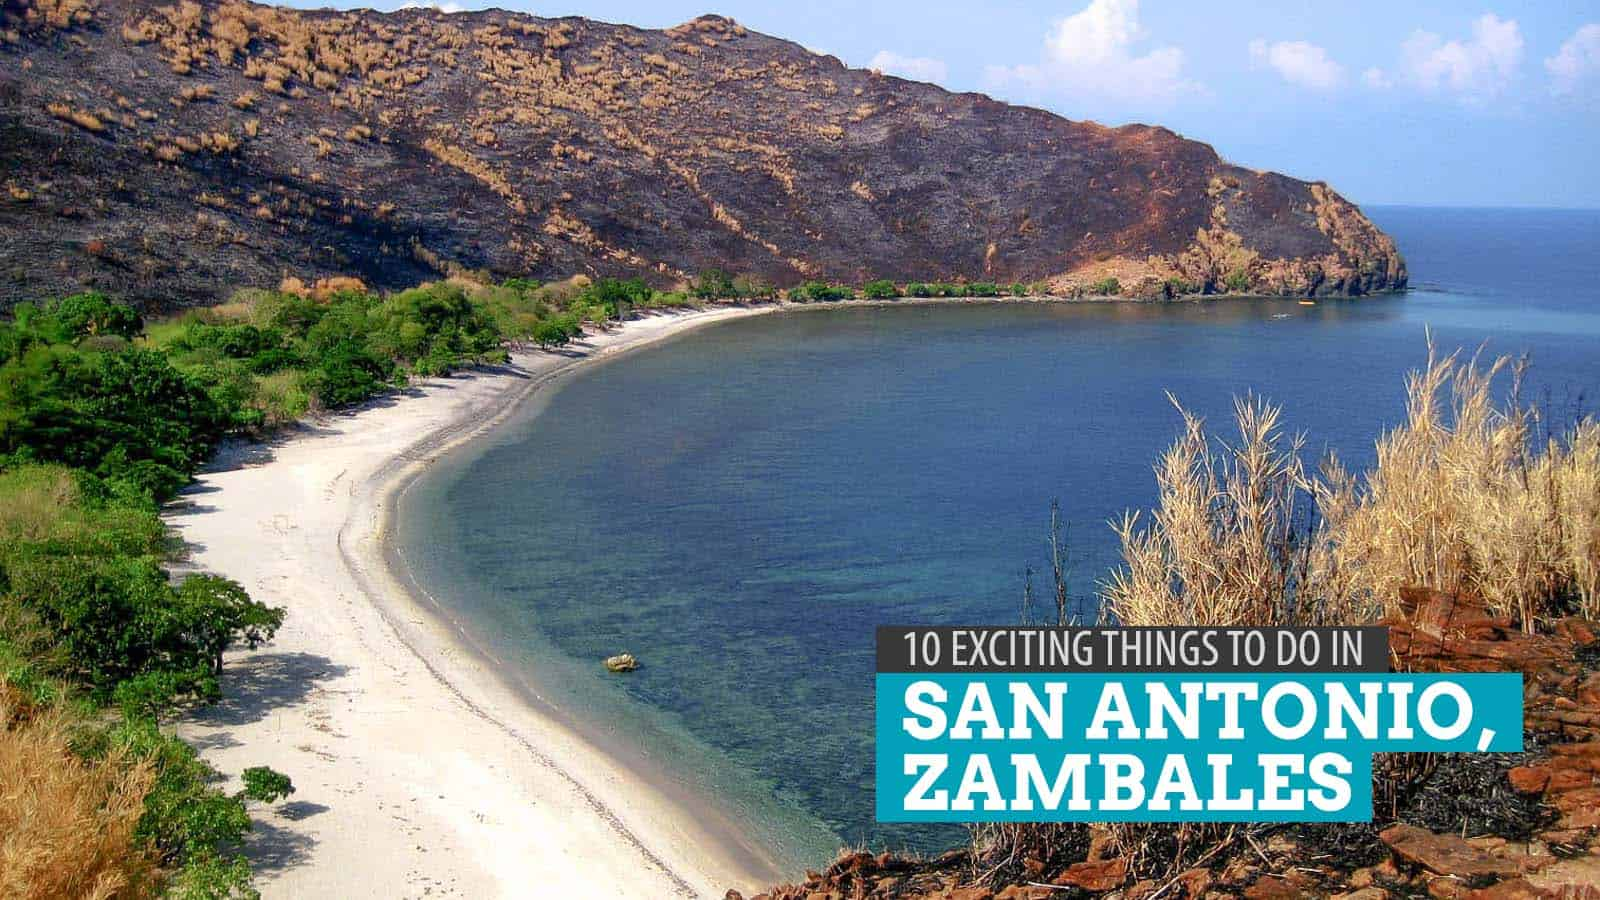 10 Exciting Things To Do In San Antonio Zambales The Poor Traveler Blog